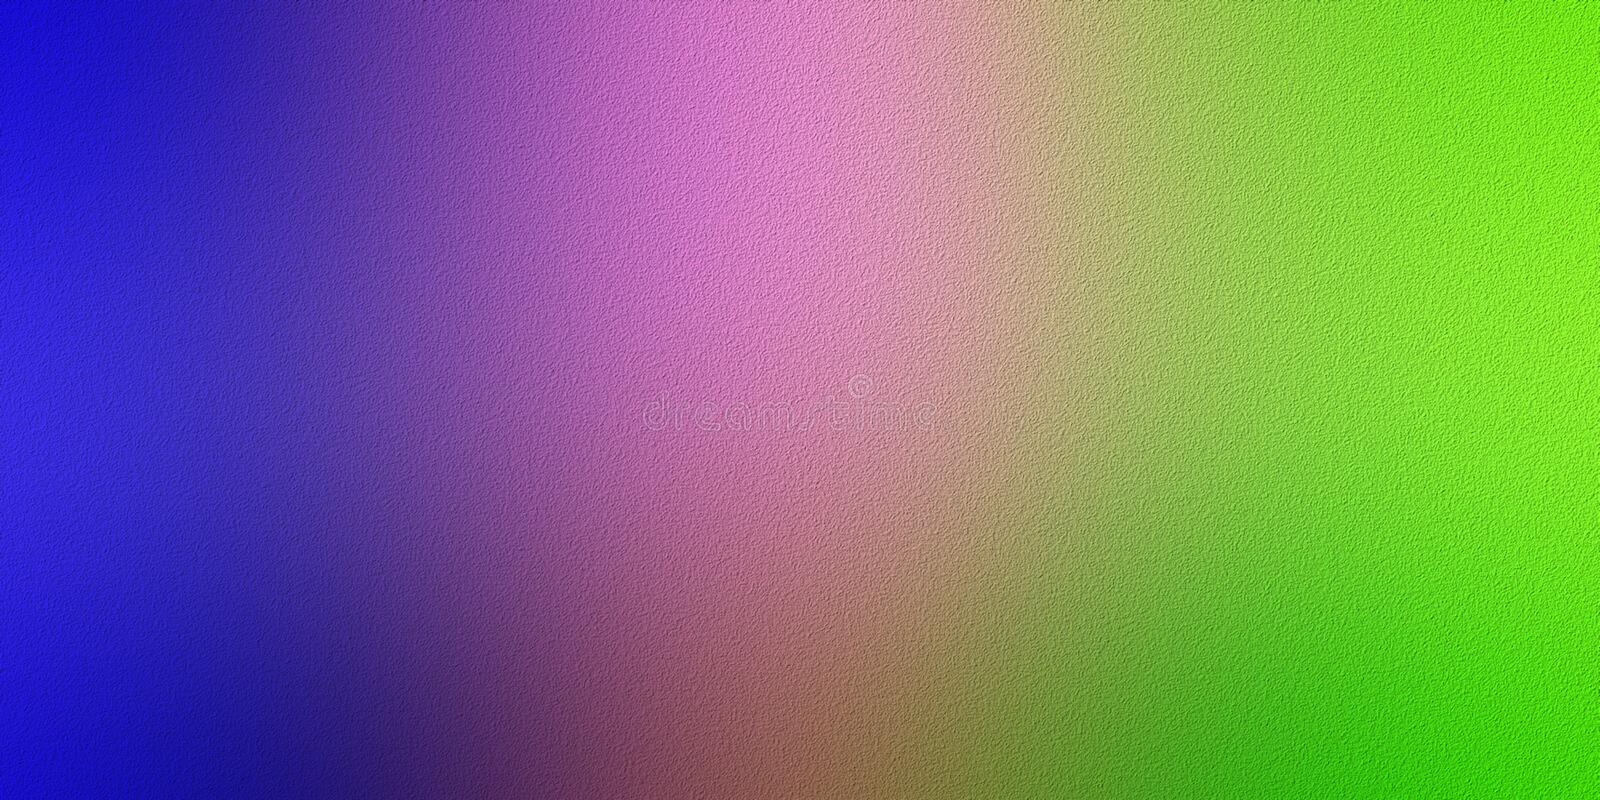 Colorful blur abstract shaded background wallpaper, vector illustration. royalty free stock image